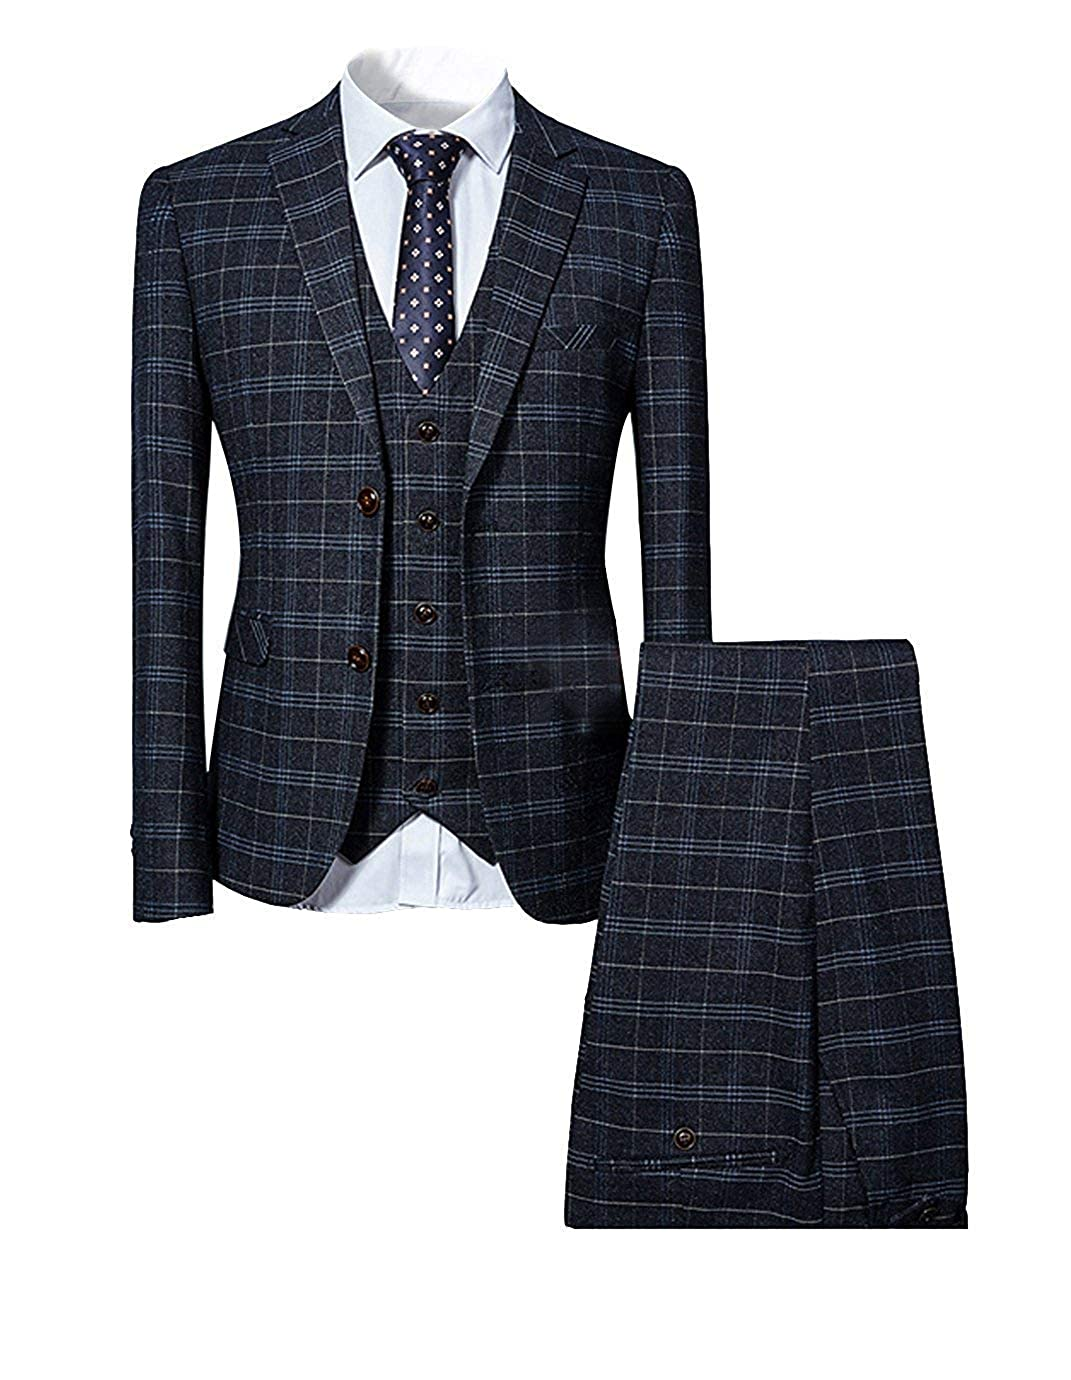 LoveeToo Mens New 3 Piece Slim fit Checked Suit Blue//Black Single Breasted Vintage Suits